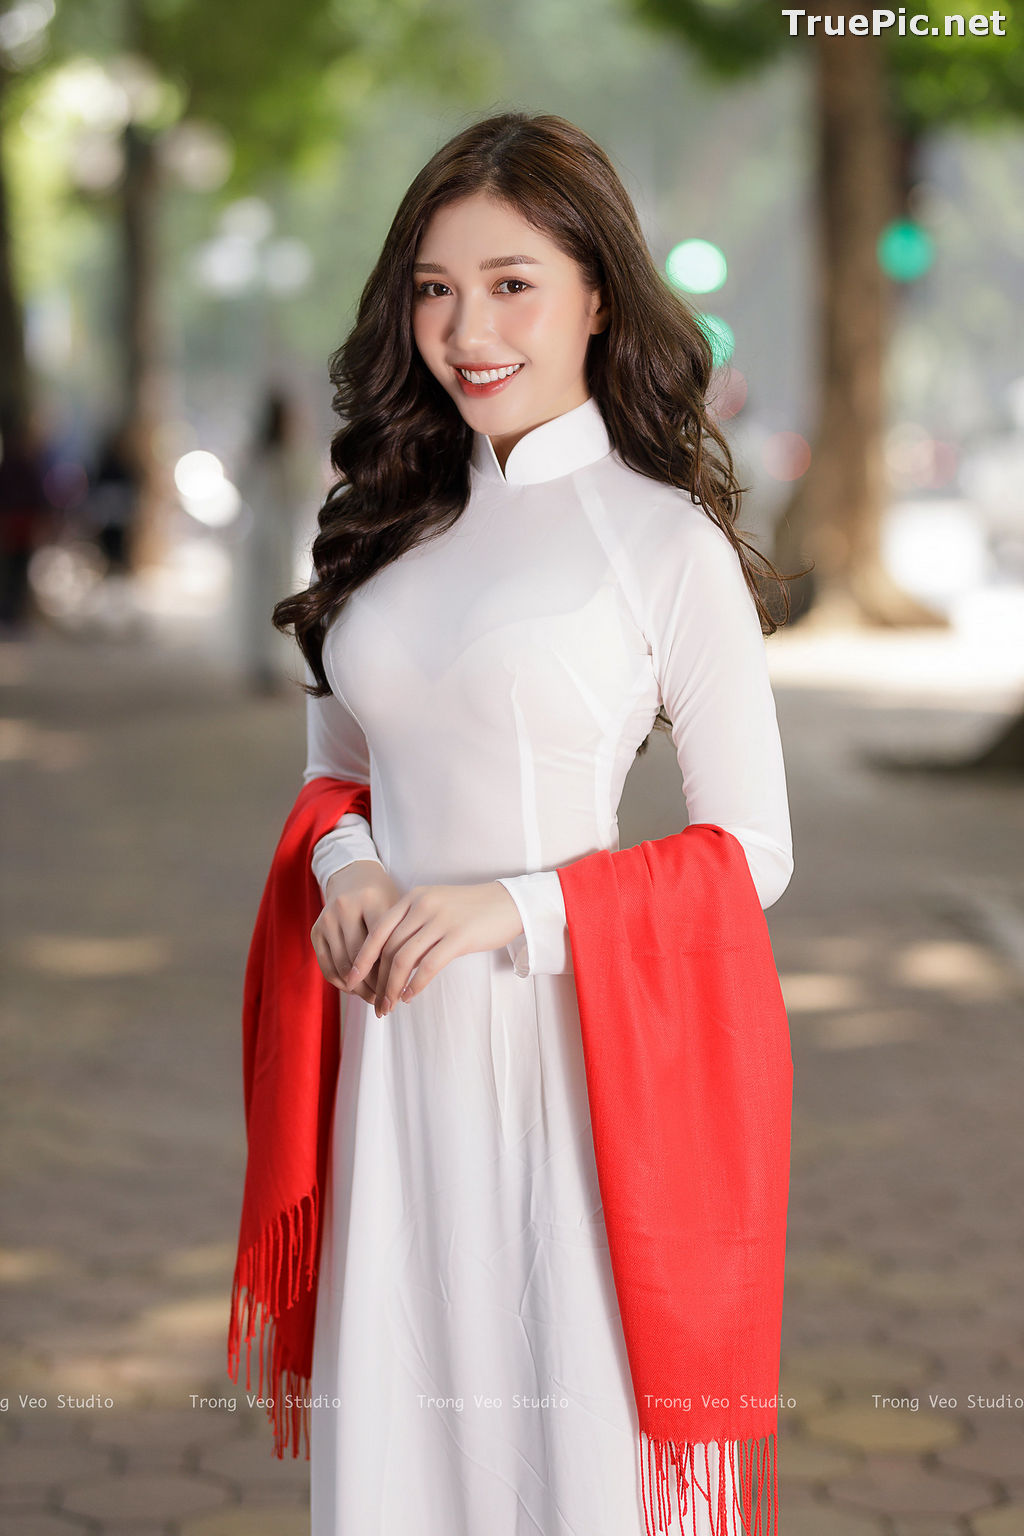 Image The Beauty of Vietnamese Girls with Traditional Dress (Ao Dai) #1 - TruePic.net - Picture-7